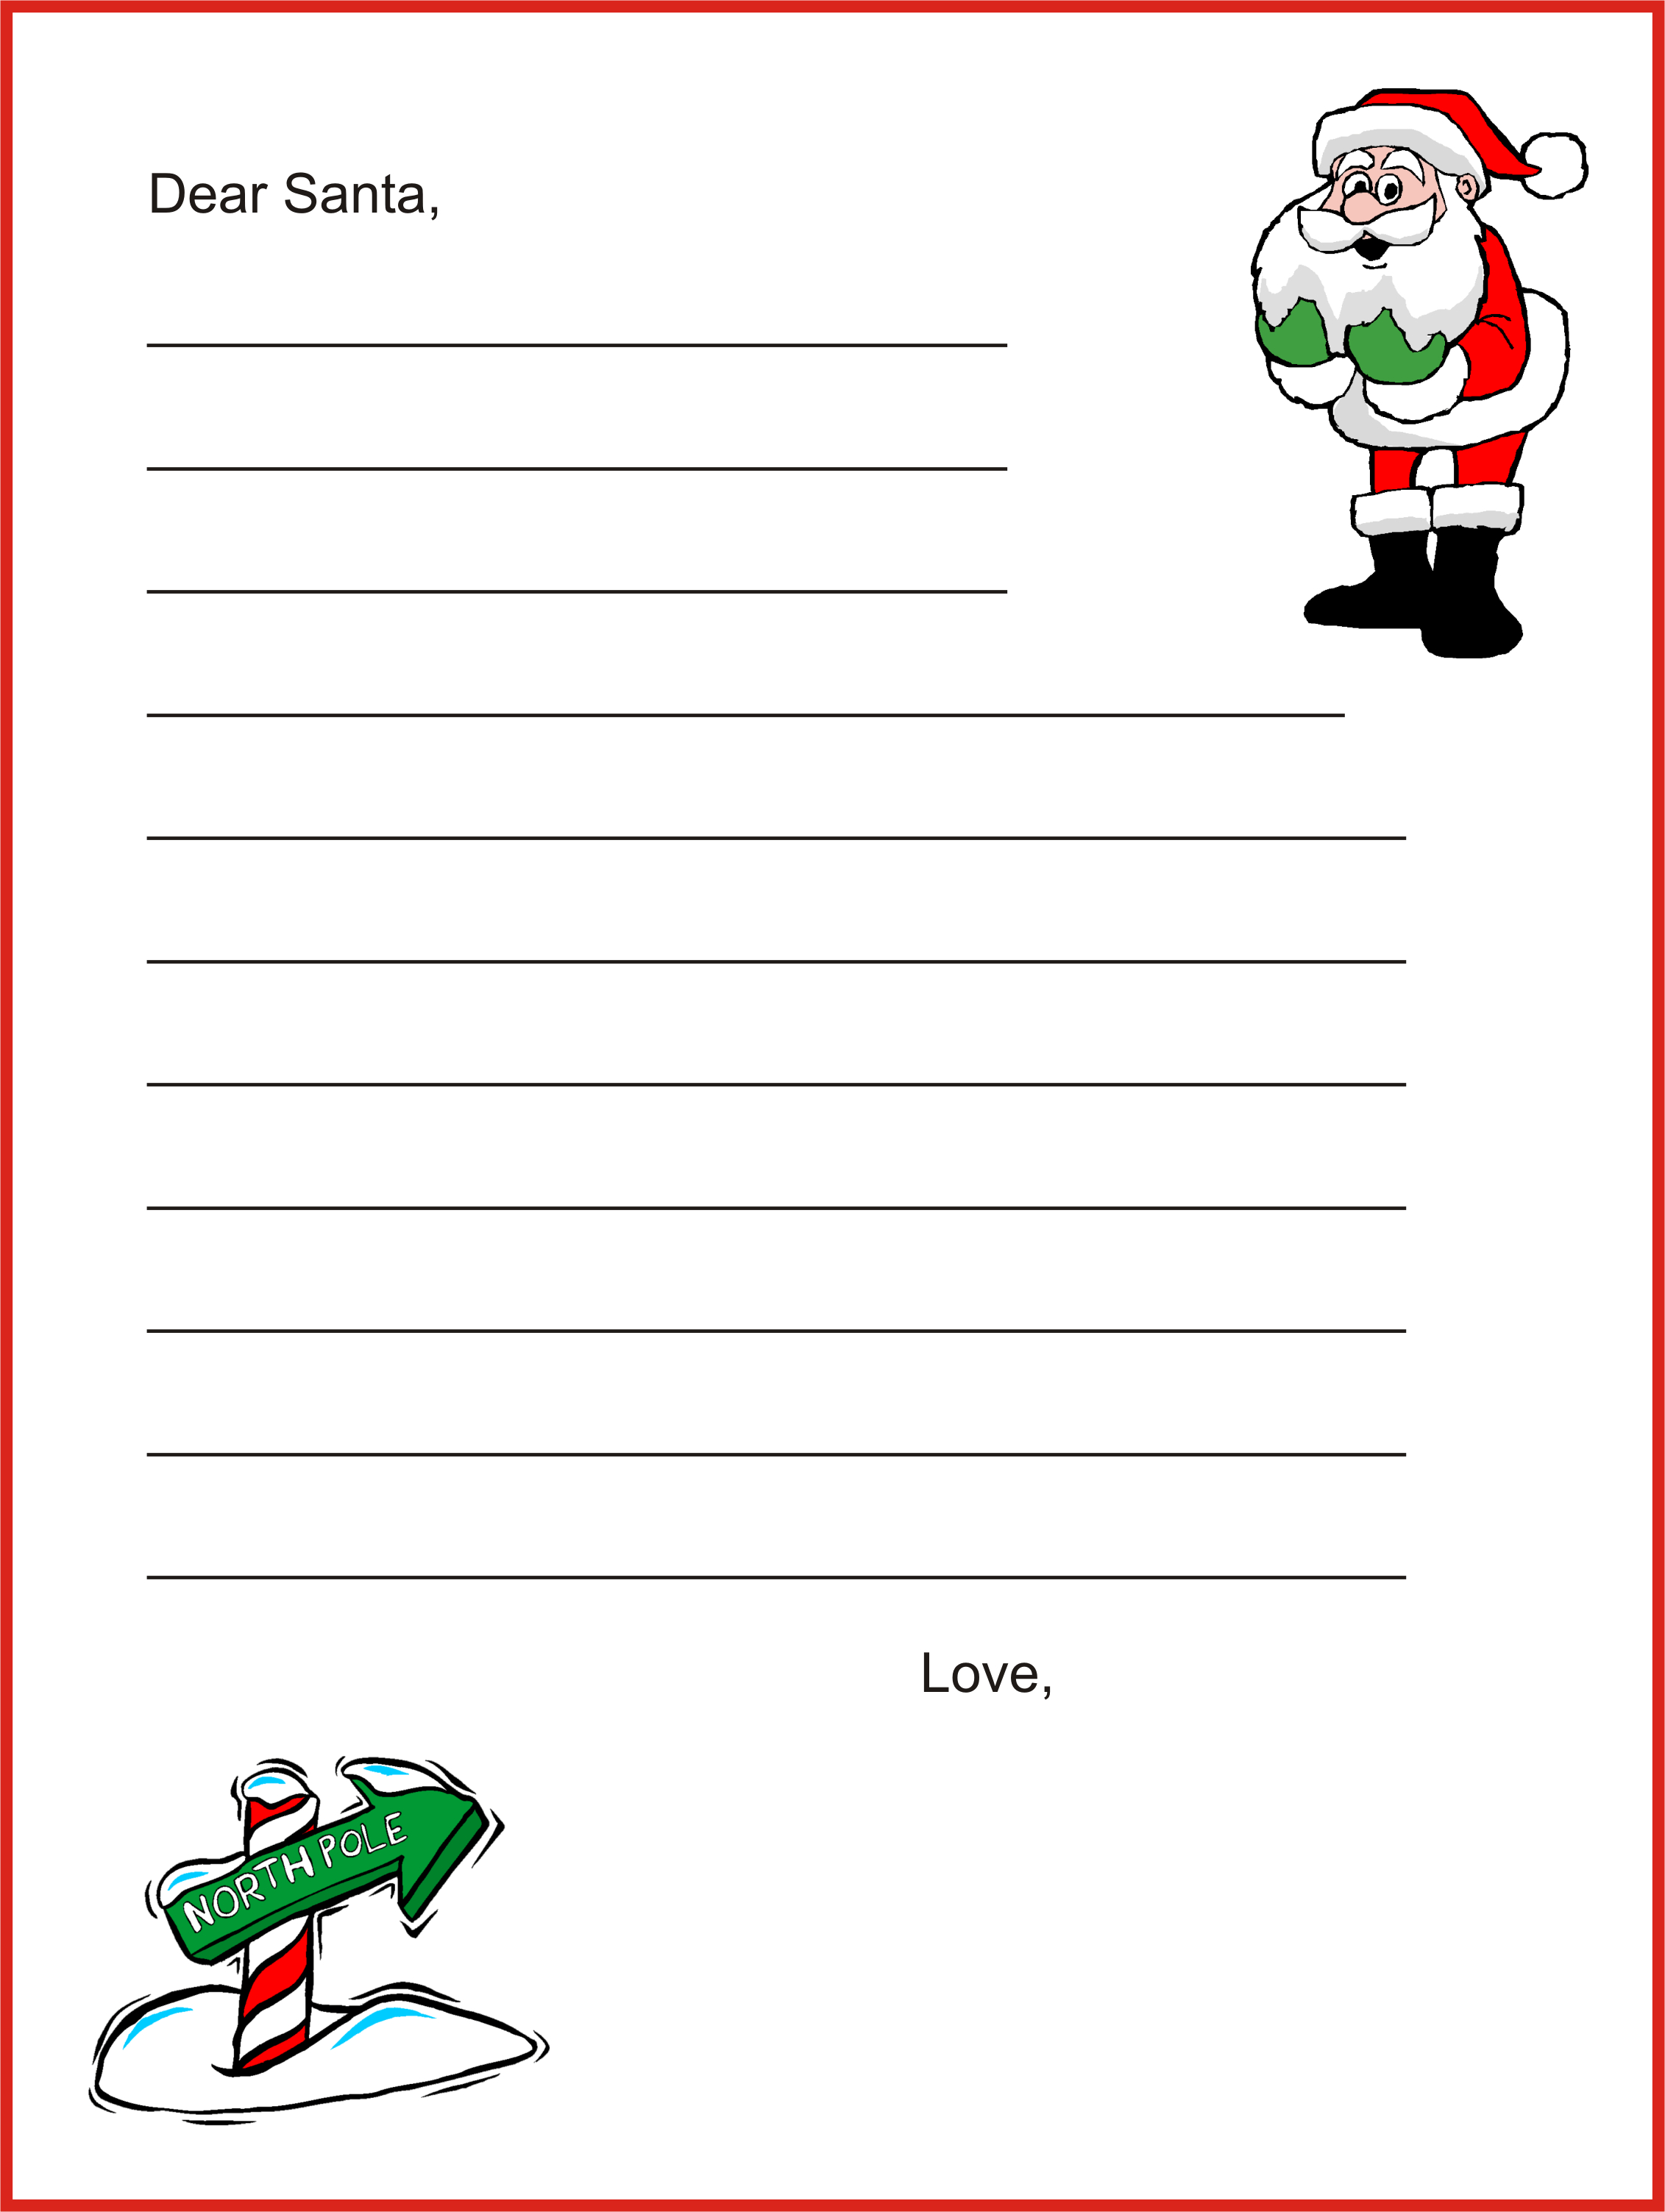 Dear santa letter template christmas letter tips free dear santa letter stationery spiritdancerdesigns Image collections